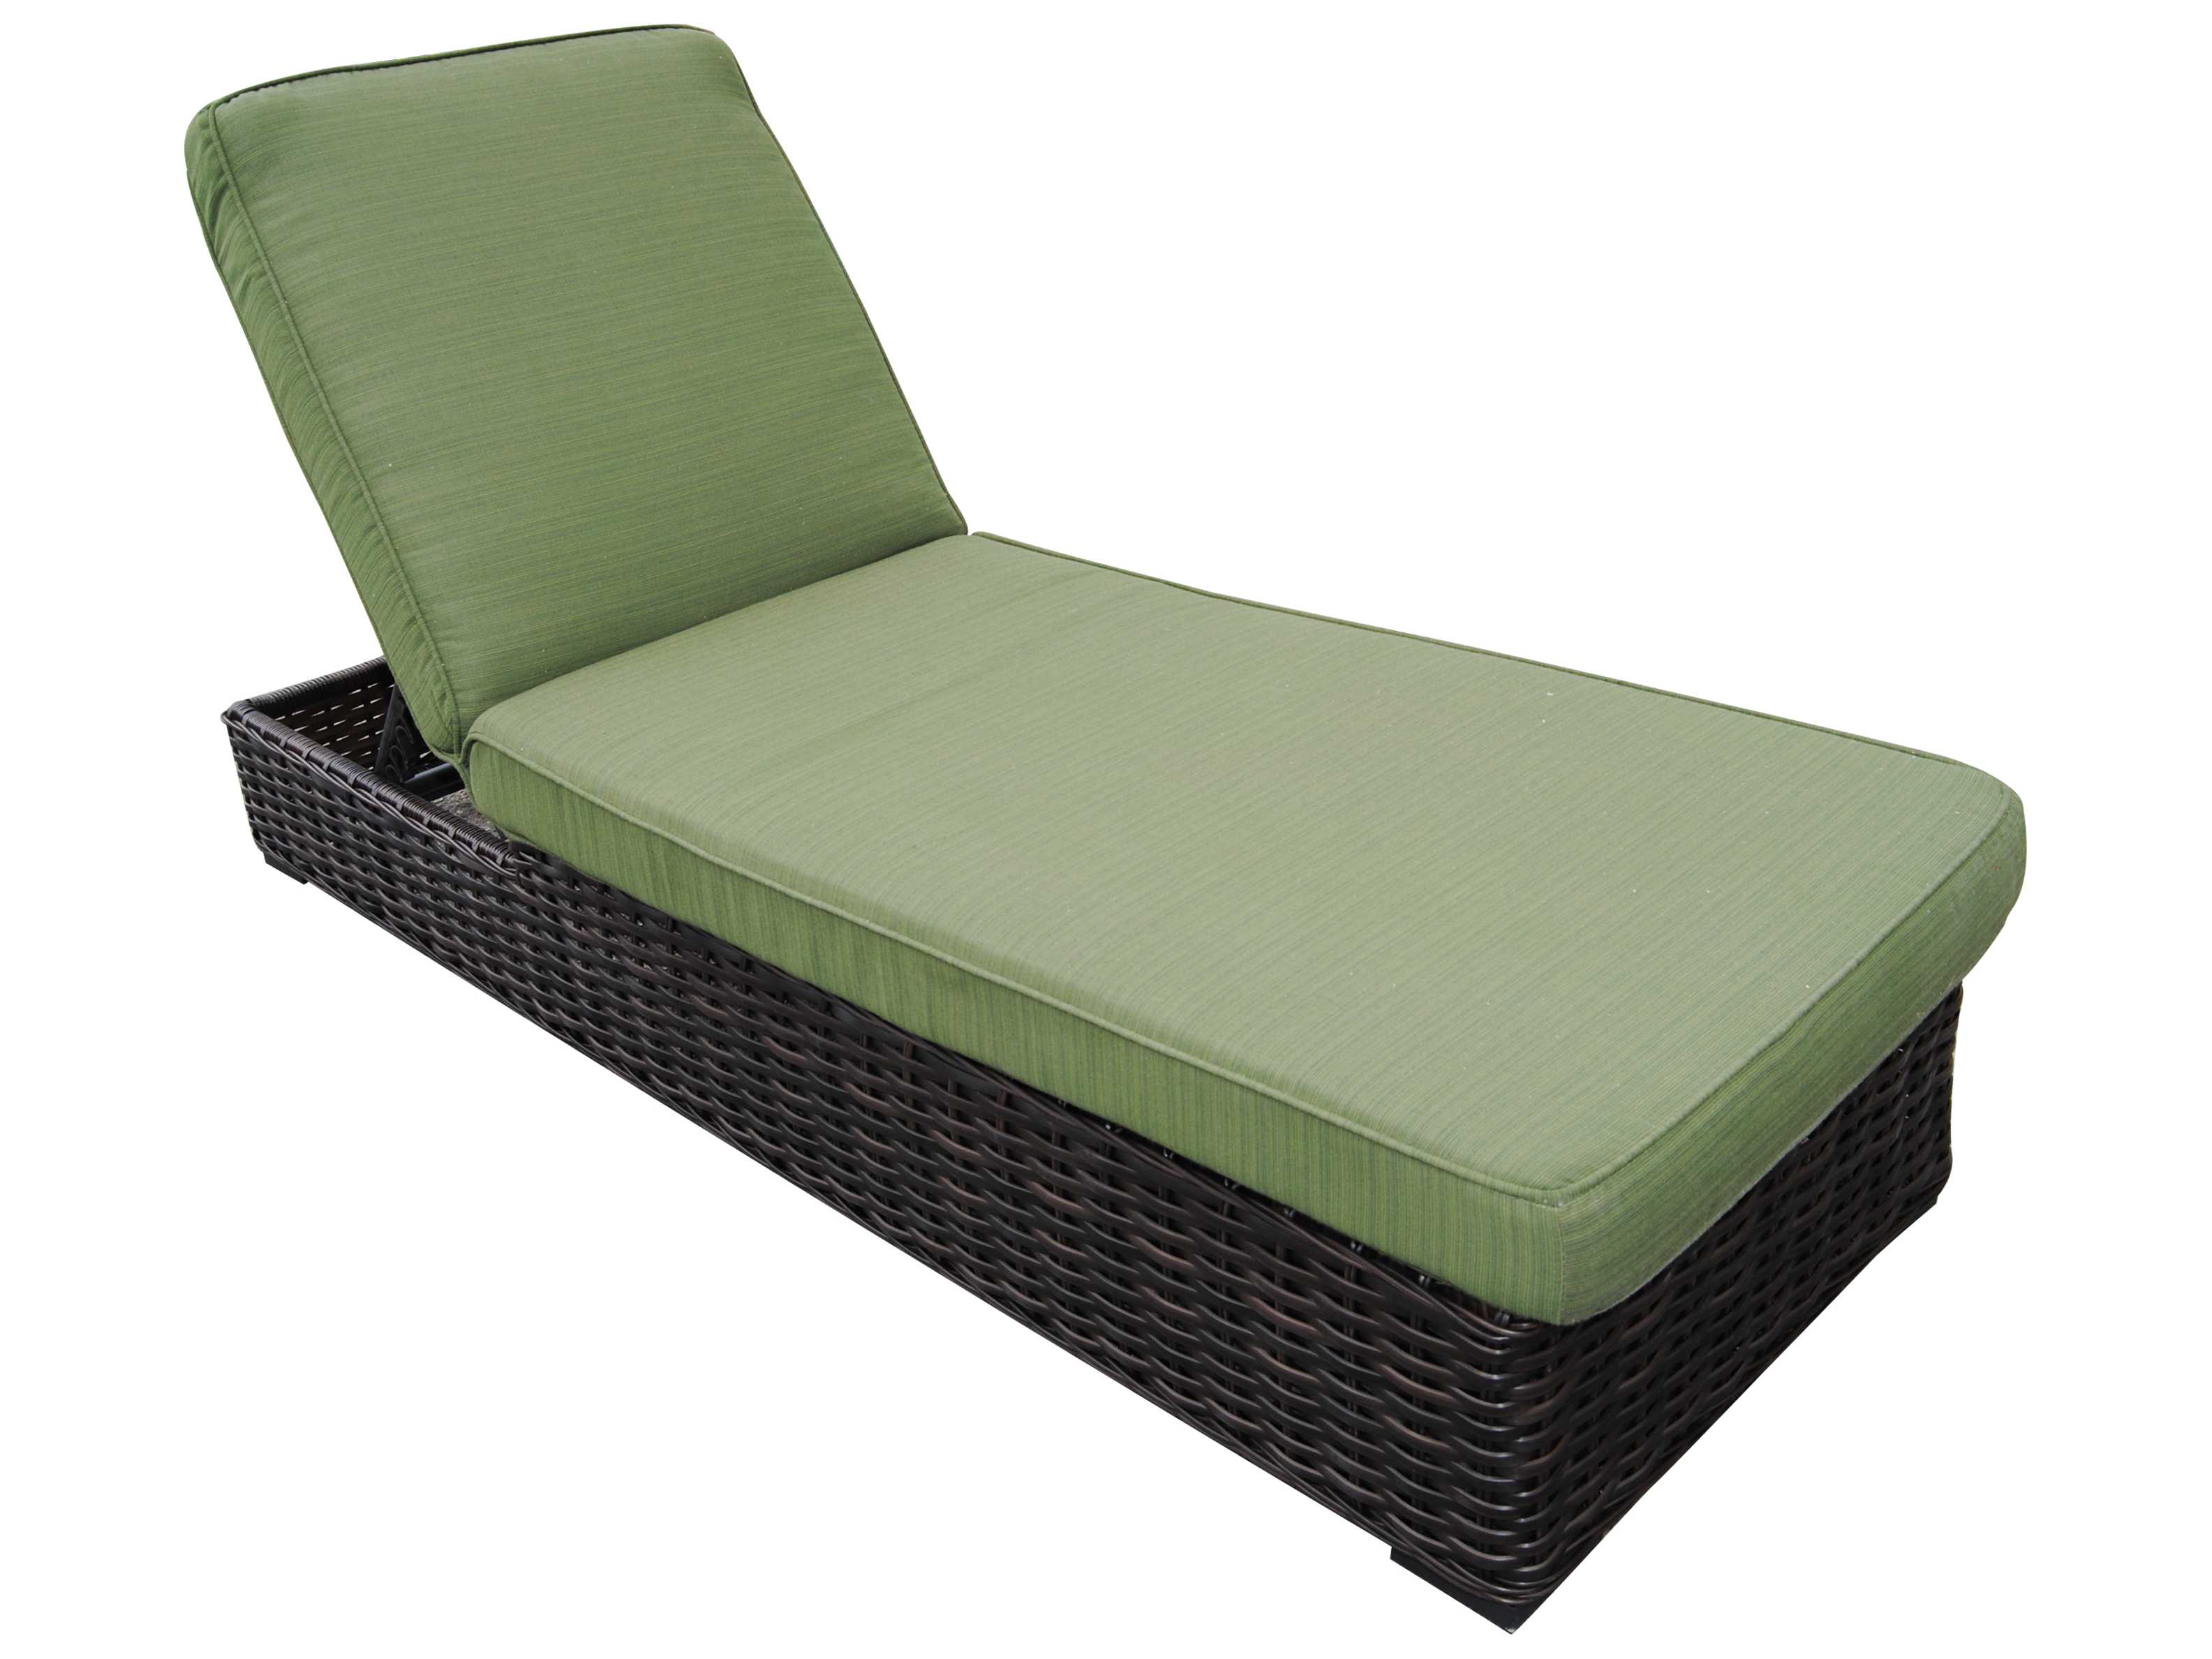 Teva santa monica wicker rattan chaise lounge 105cl for Bamboo chaise lounge